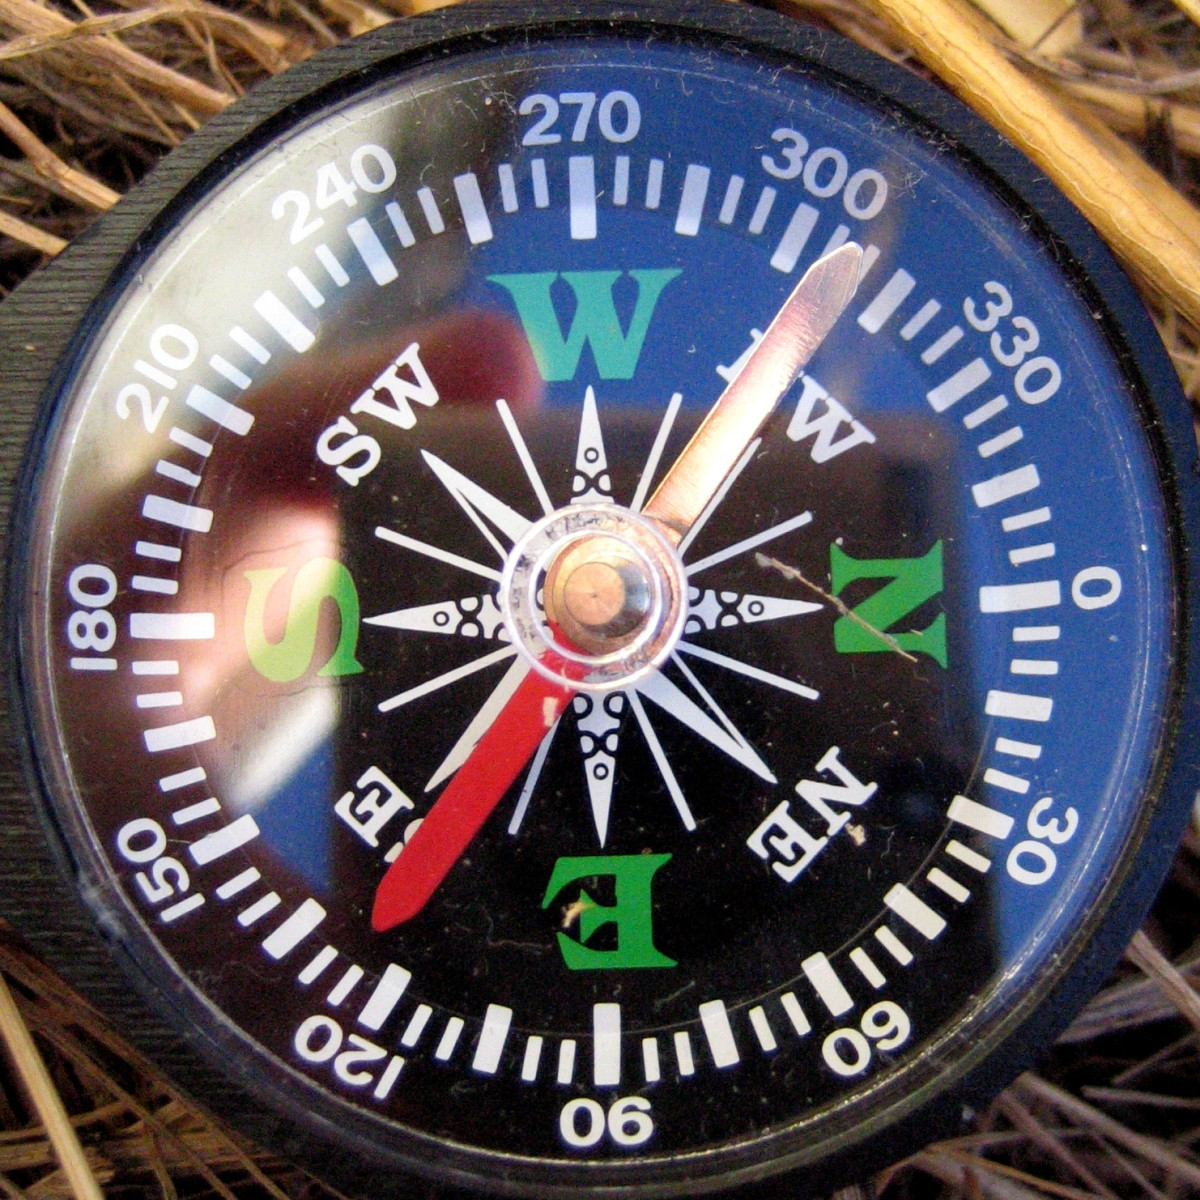 Very inexpensive compass; this is the kind we had with us on our hike-gone-wrong. It still got us to familiar territory.